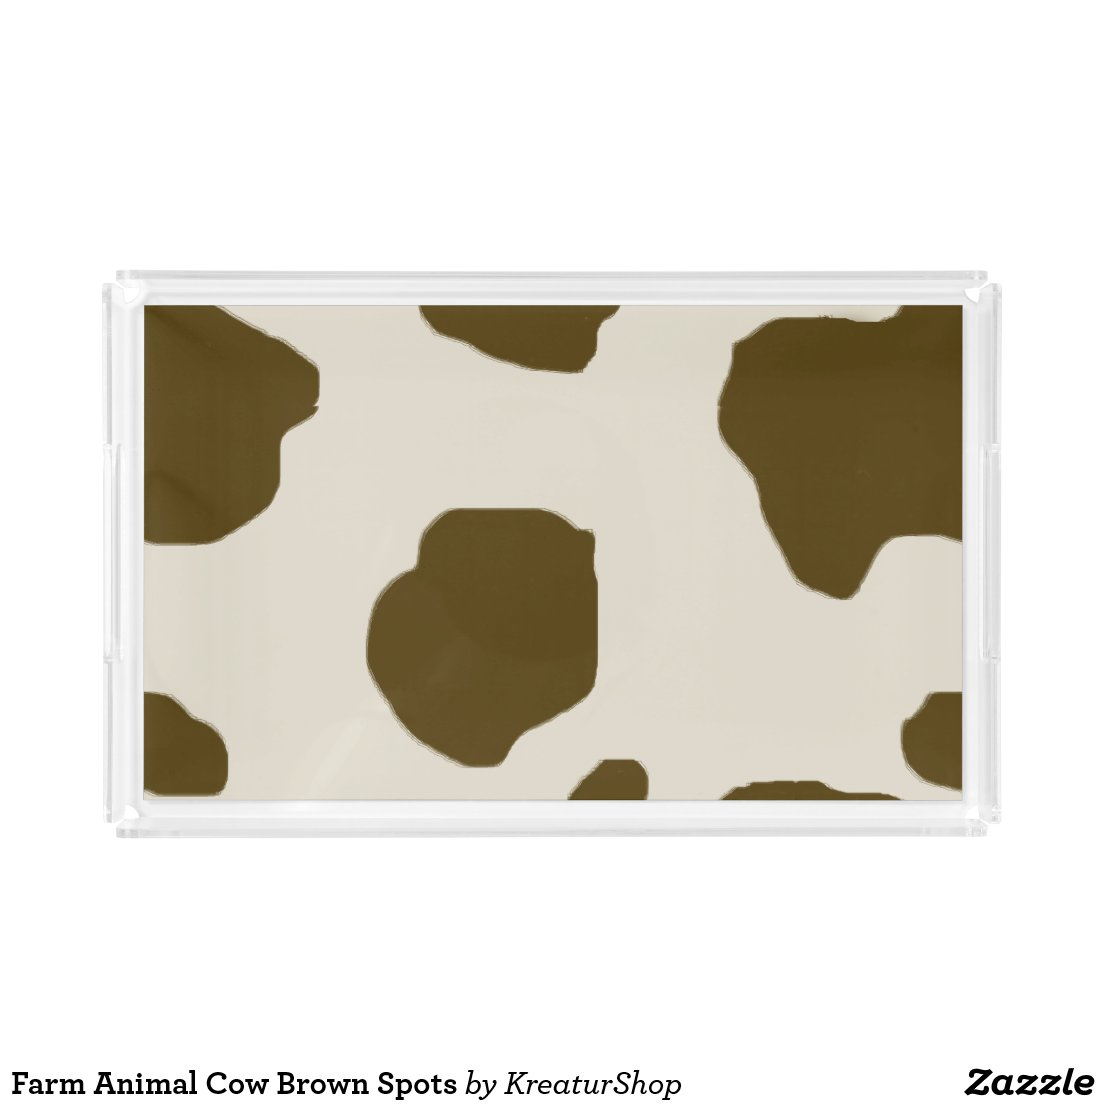 Farm Animal Cow Brown Spots